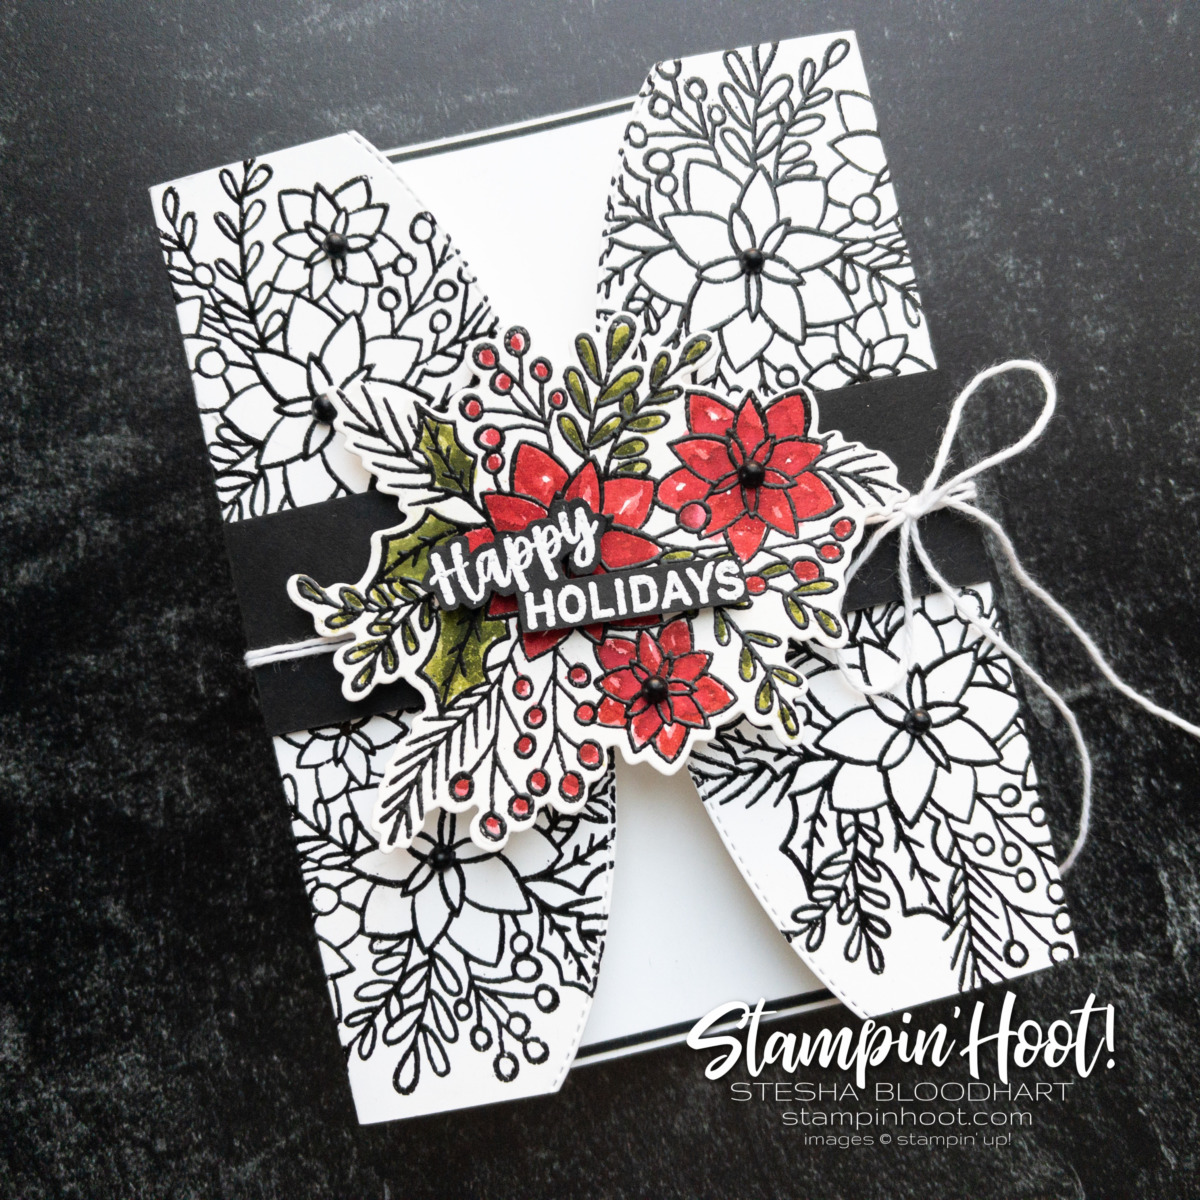 Happy Holidays Card using the Words of Cheer Bundle from Stampin' Up! Card by Stesha Bloodhart. Stampin' Hoot!